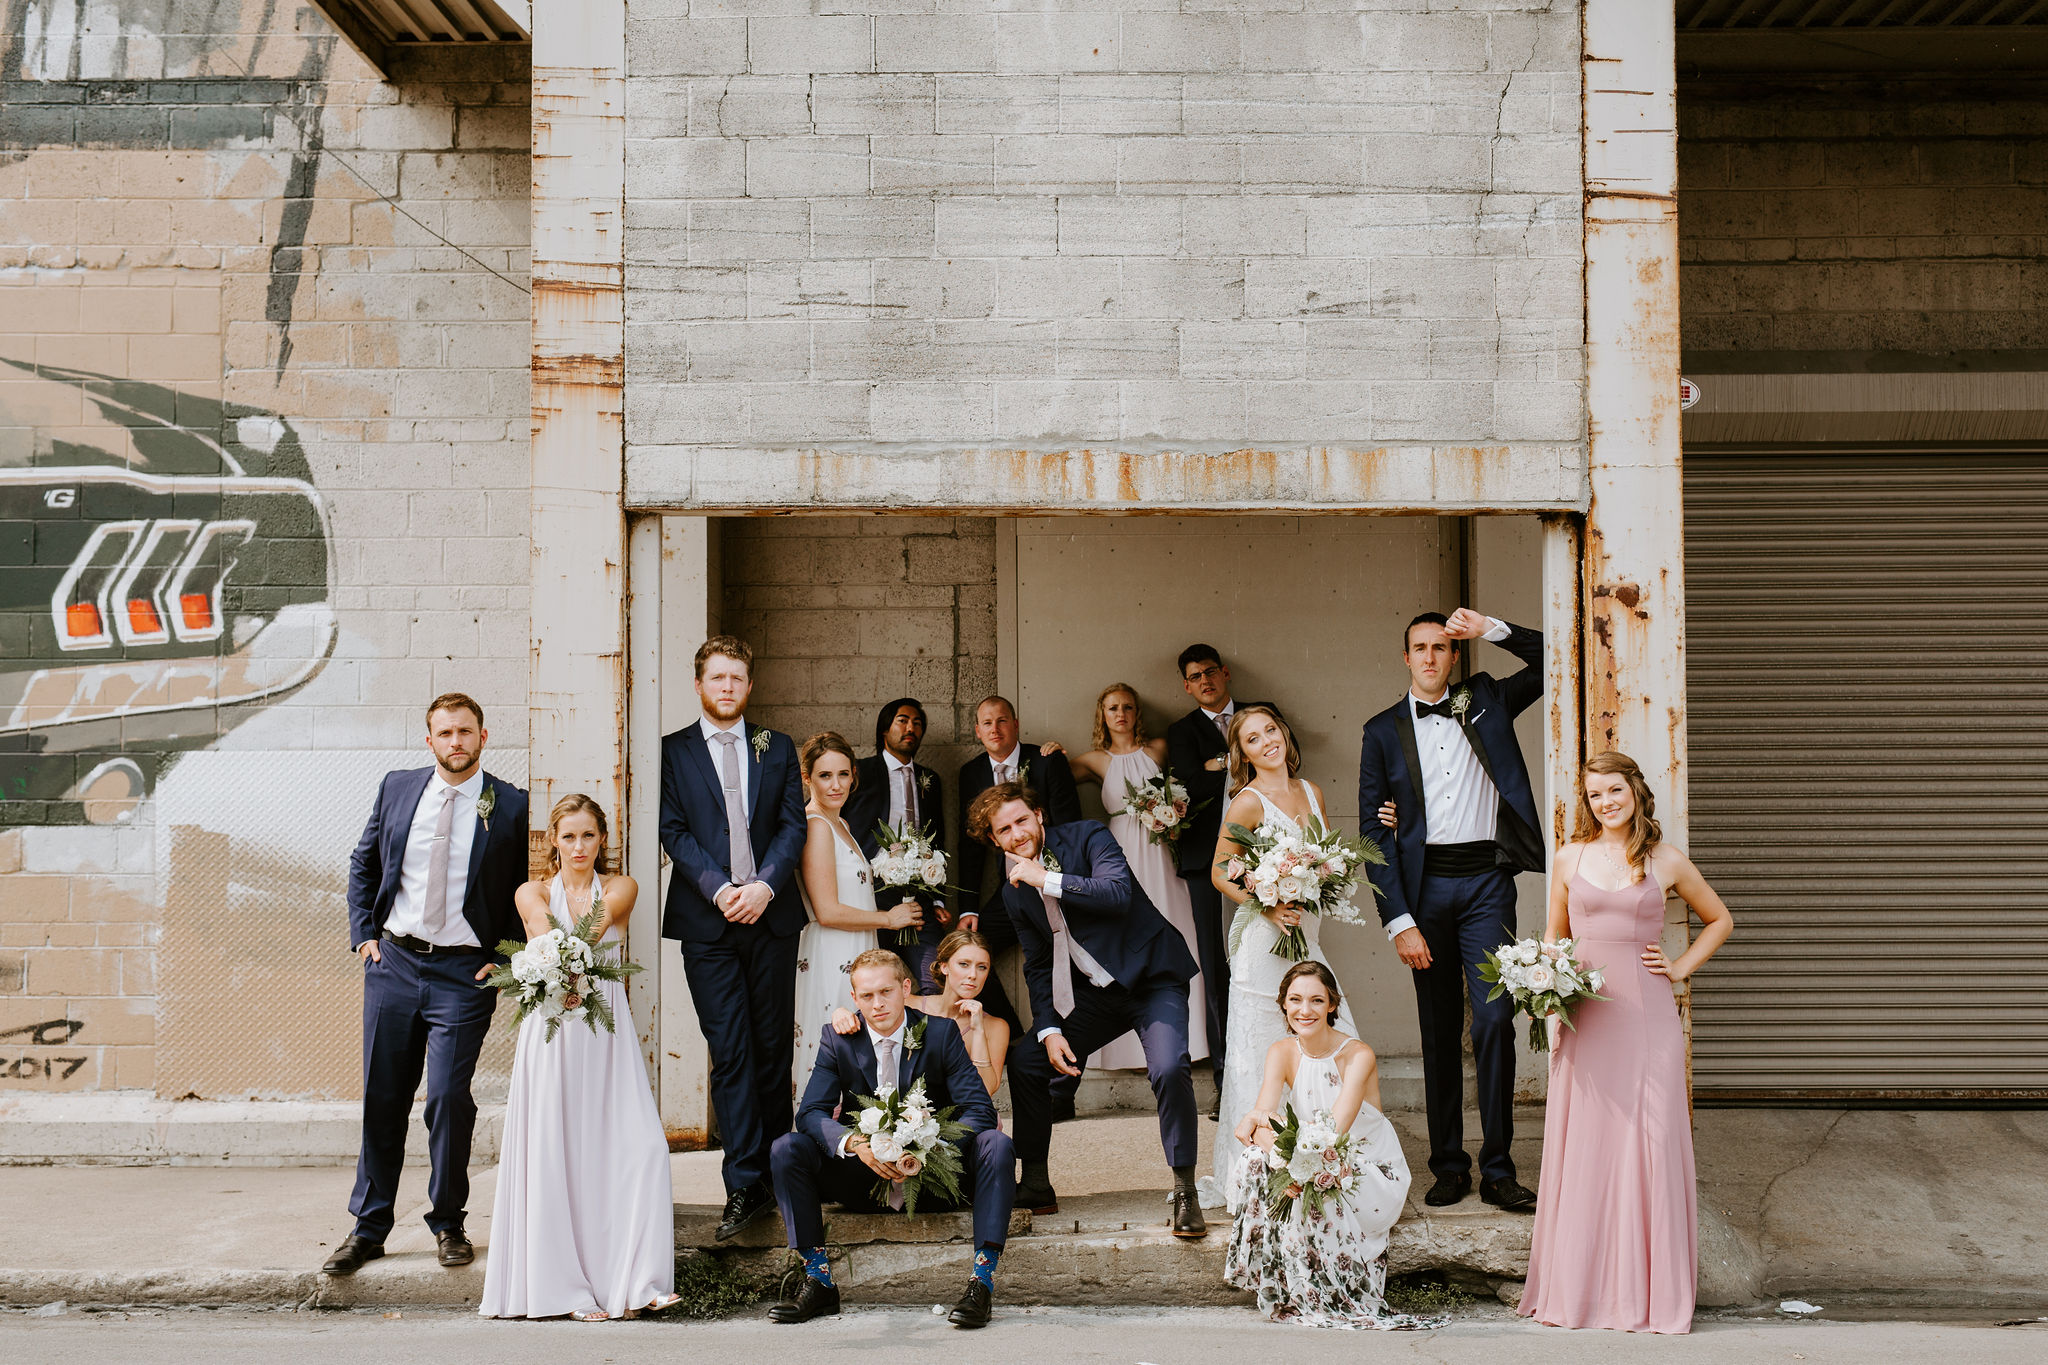 DetroitIndustrialWedding_Geoff&LyndsiPhotography_Alex&Jen_WeddingParty50.jpg